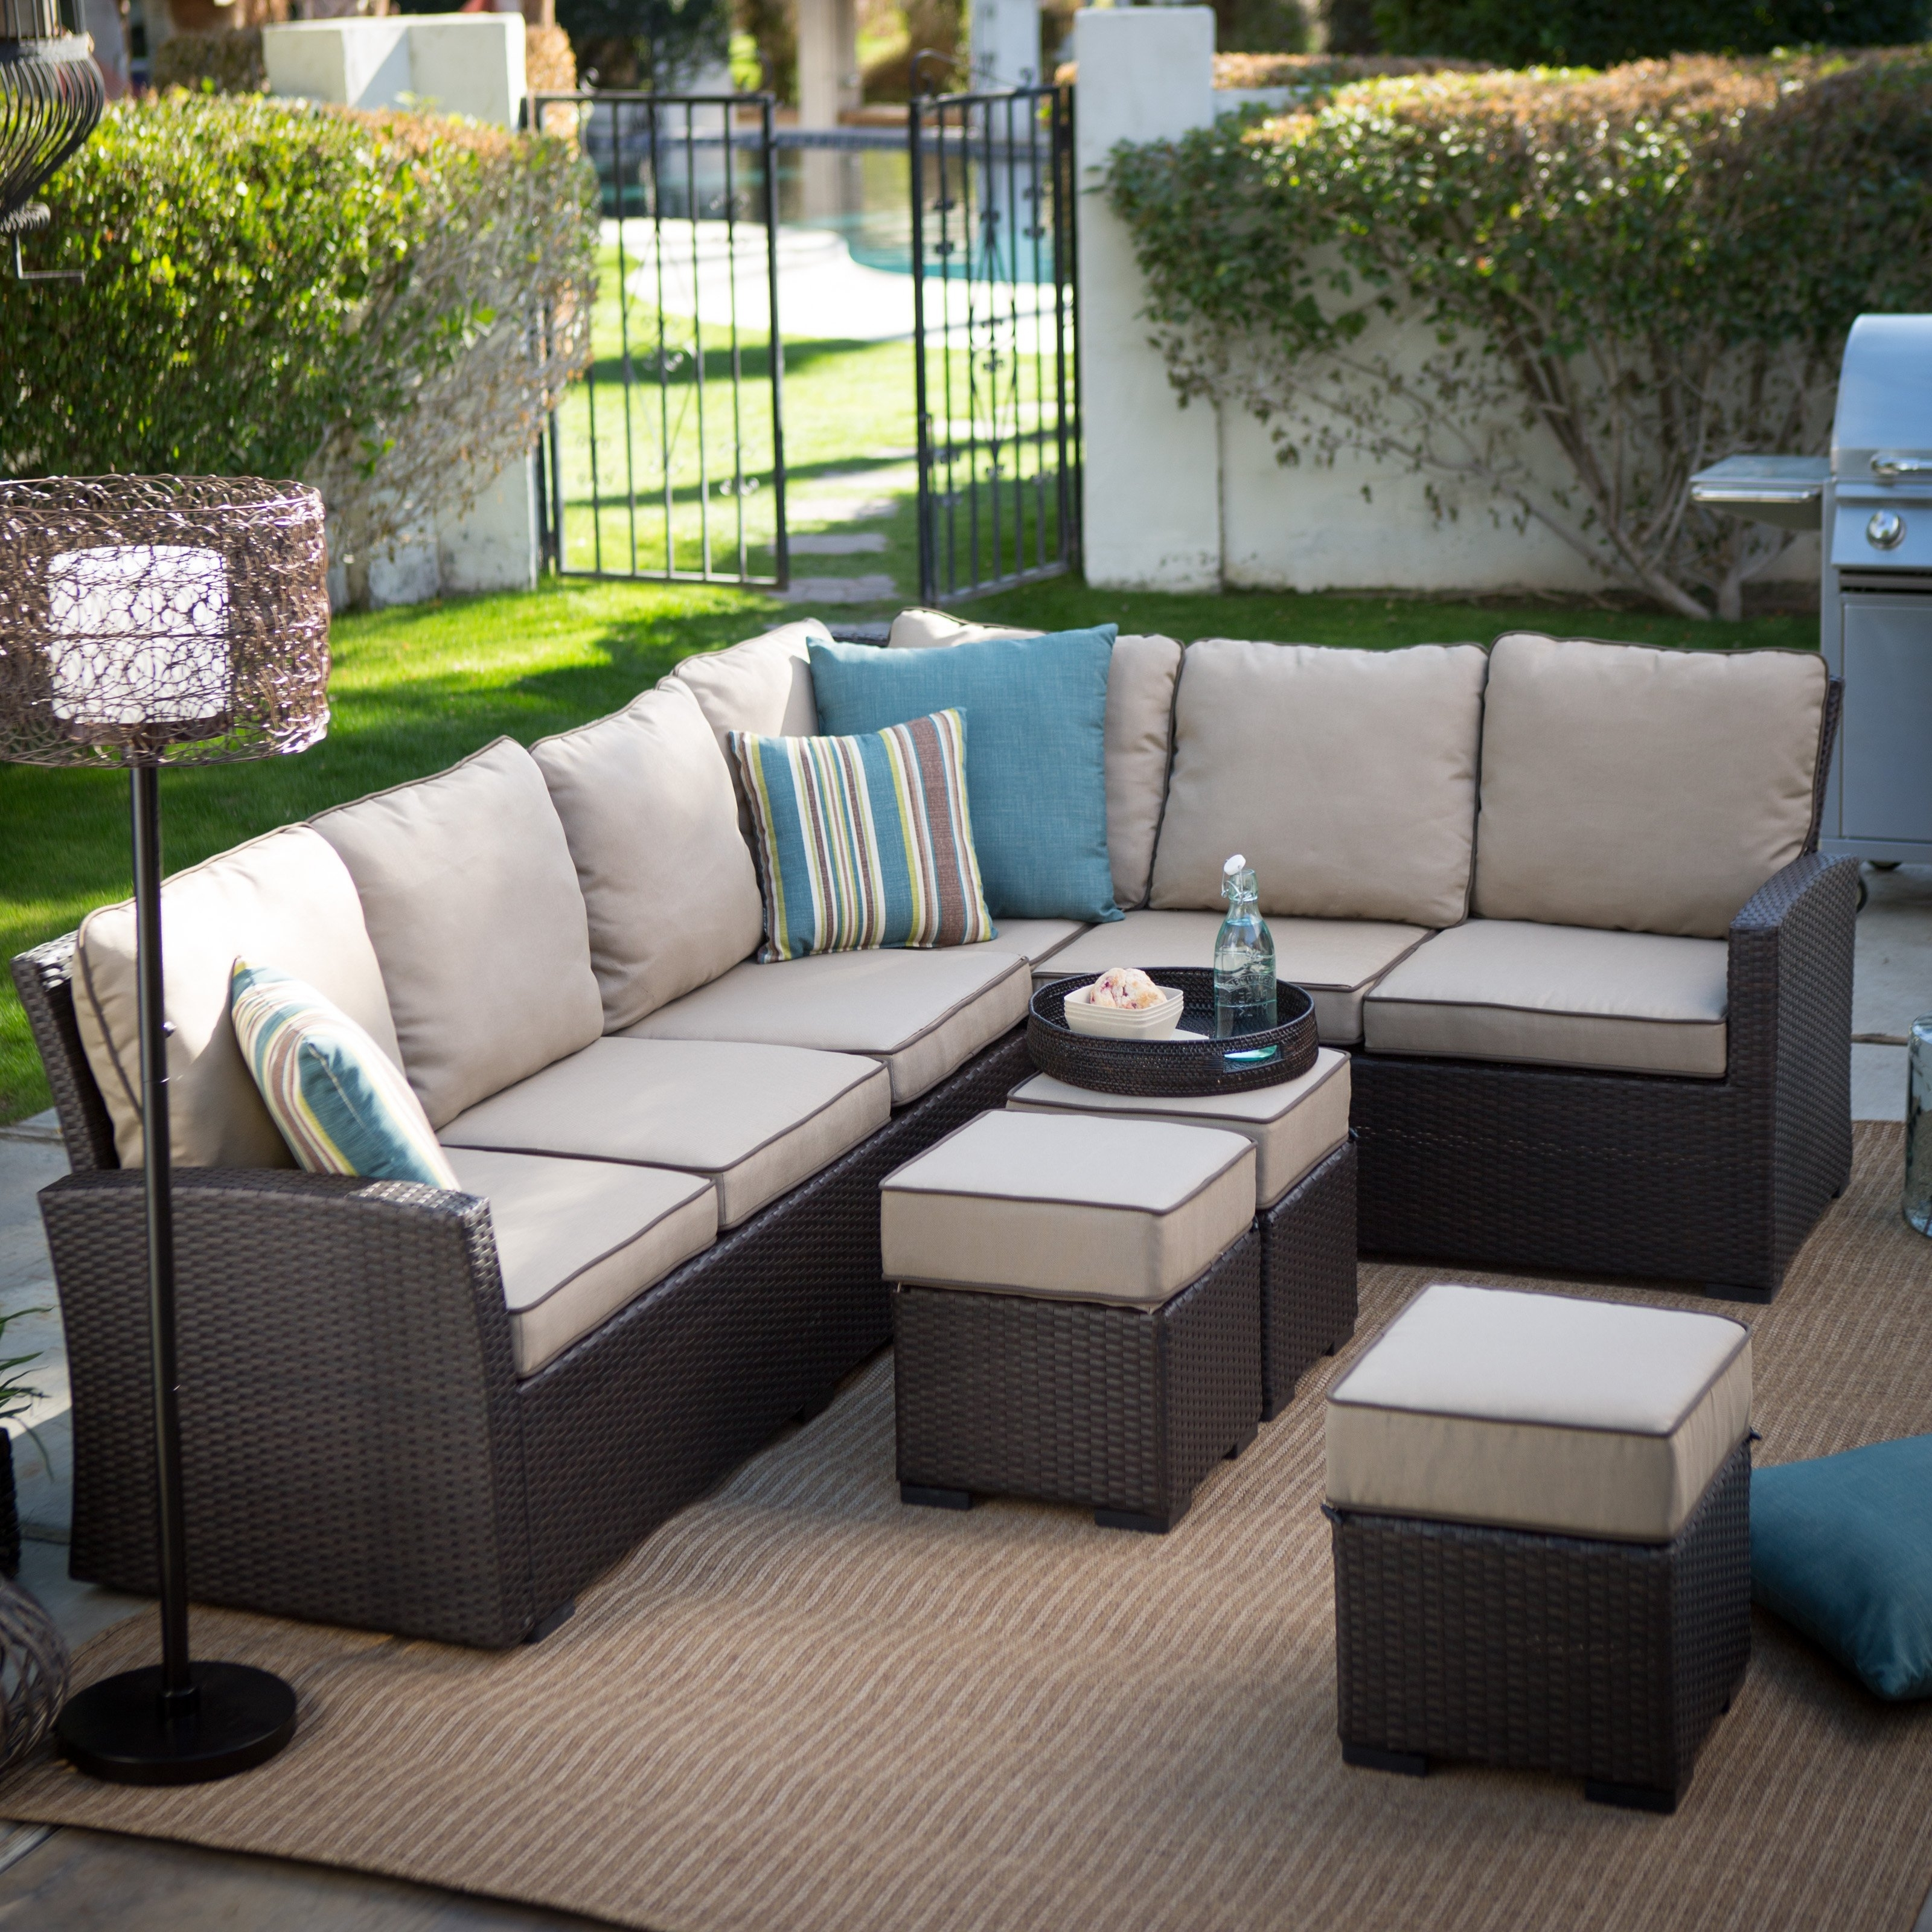 Well Liked Belham Living Monticello All Weather Outdoor Wicker Sofa Sectional In Patio Sectional Conversation Sets (View 18 of 20)